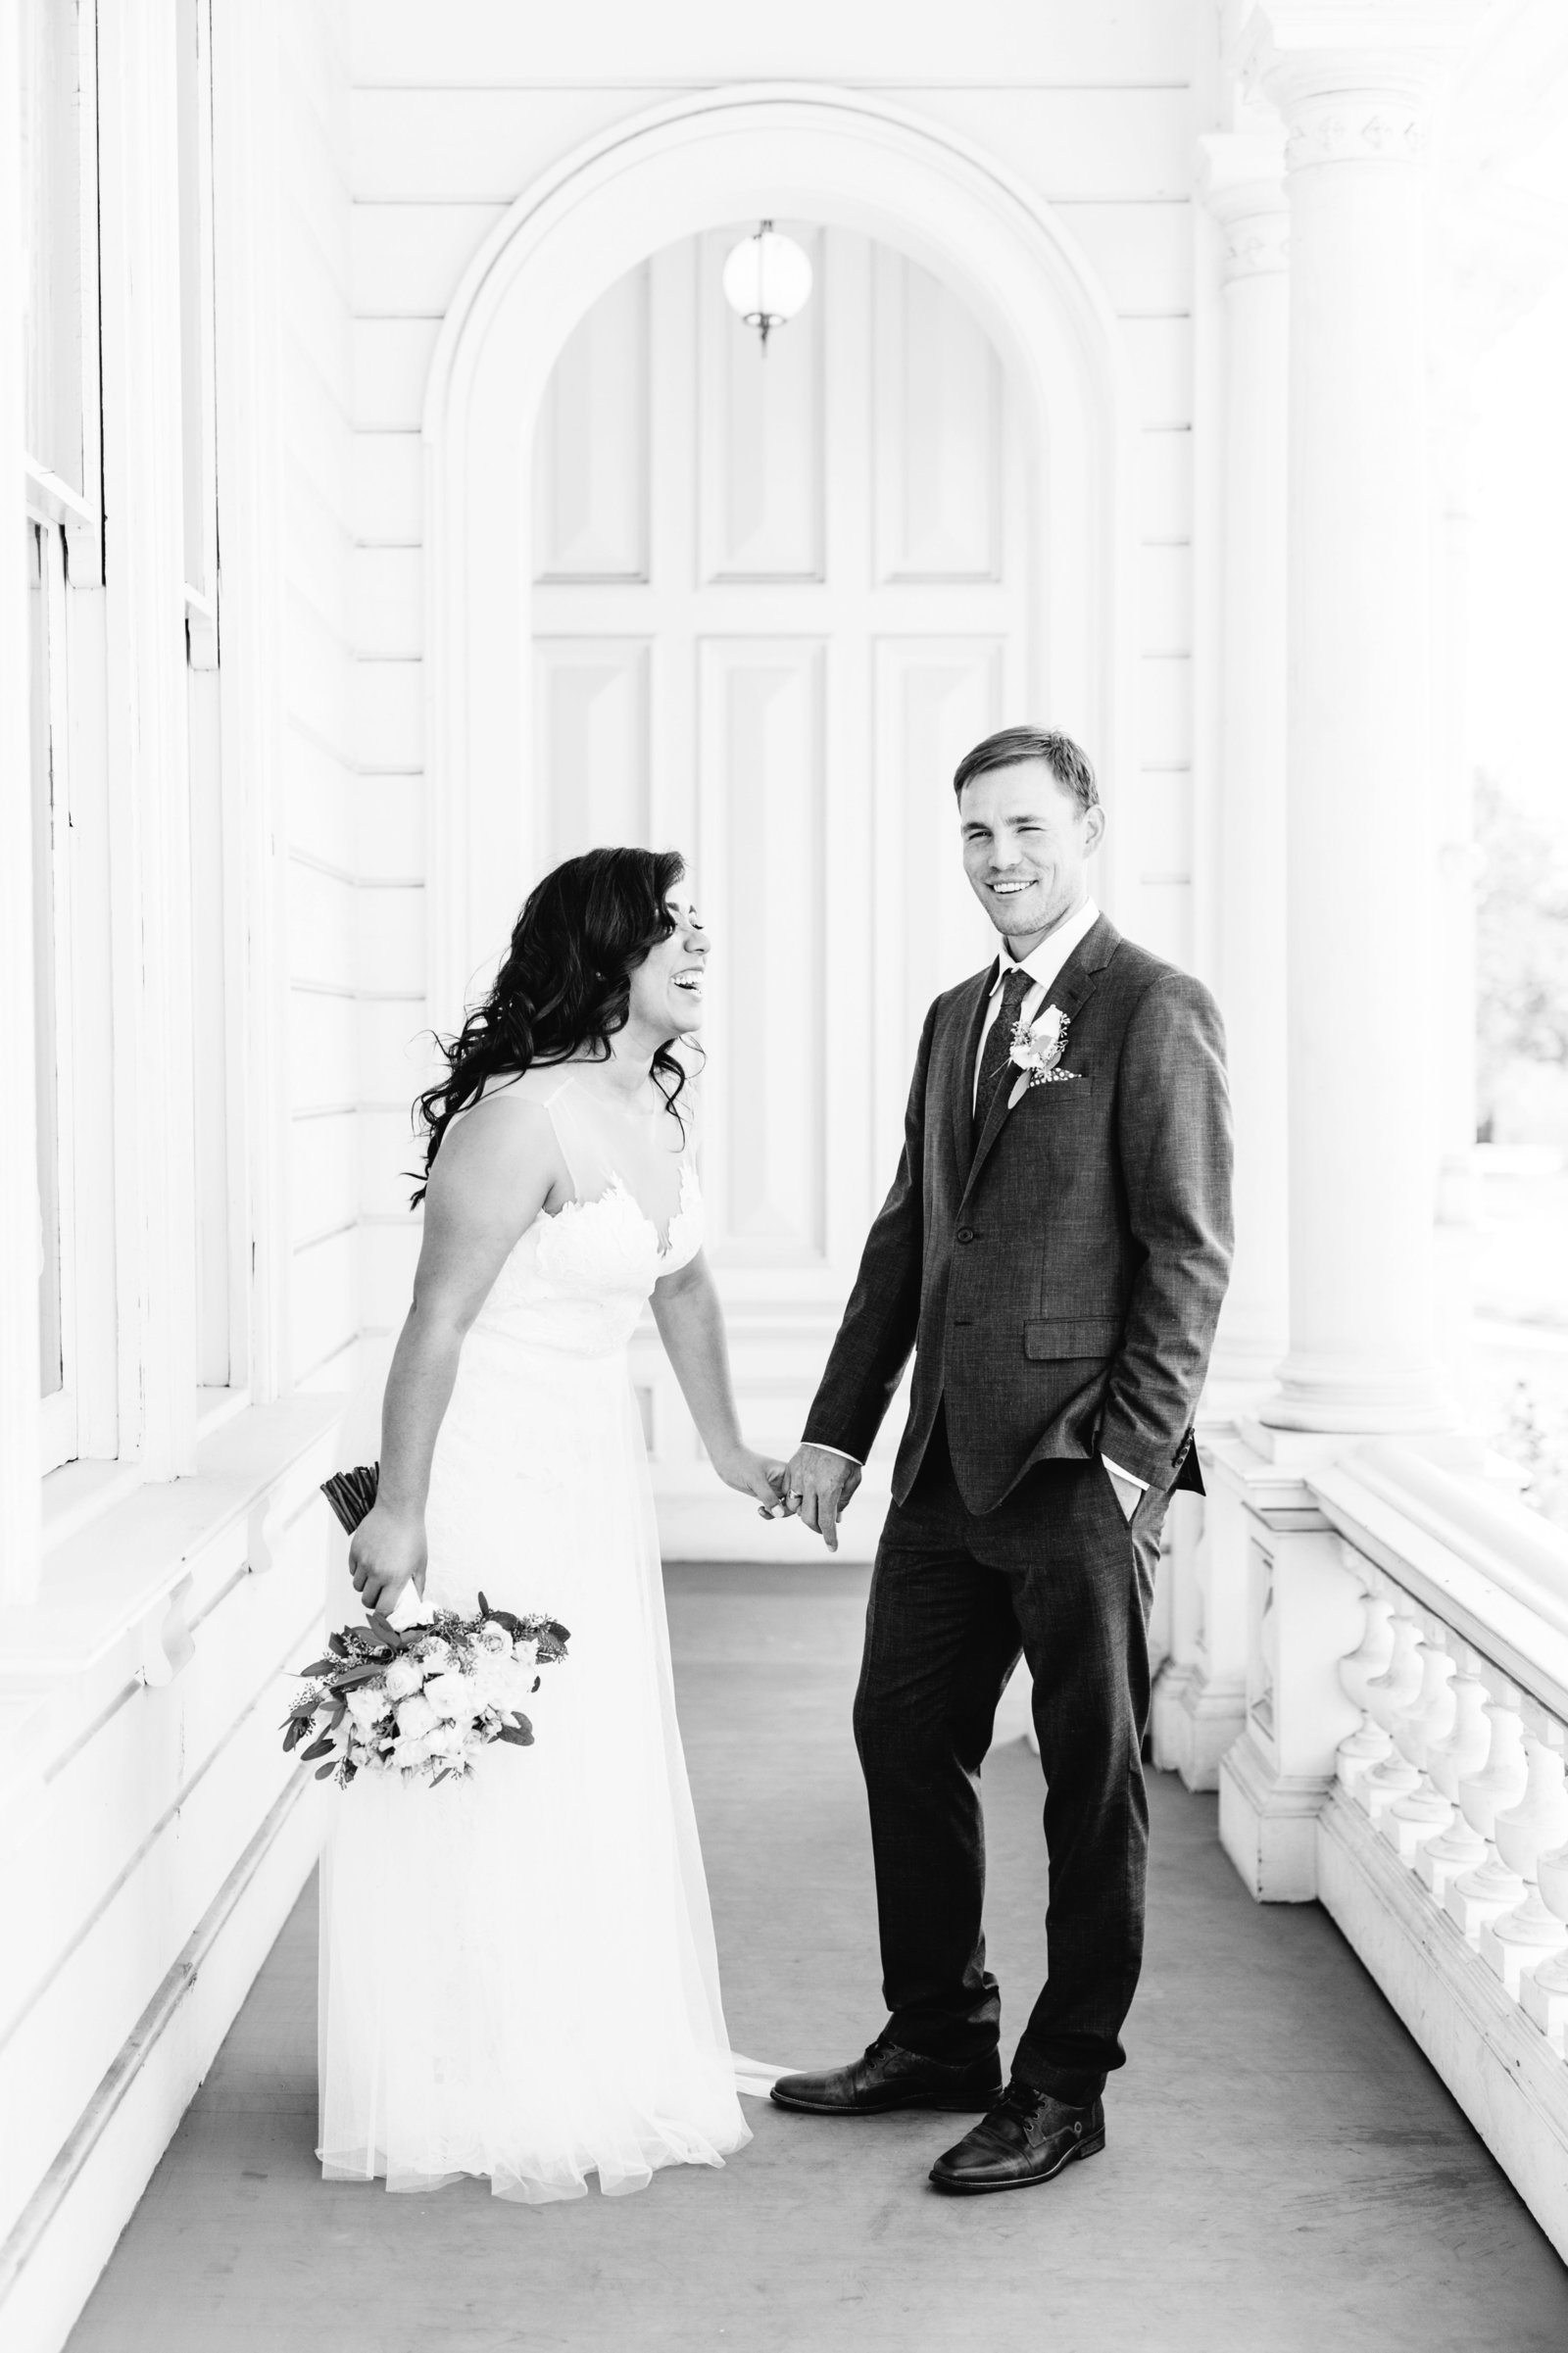 Wedding Photos-Jodee Debes Photography-273